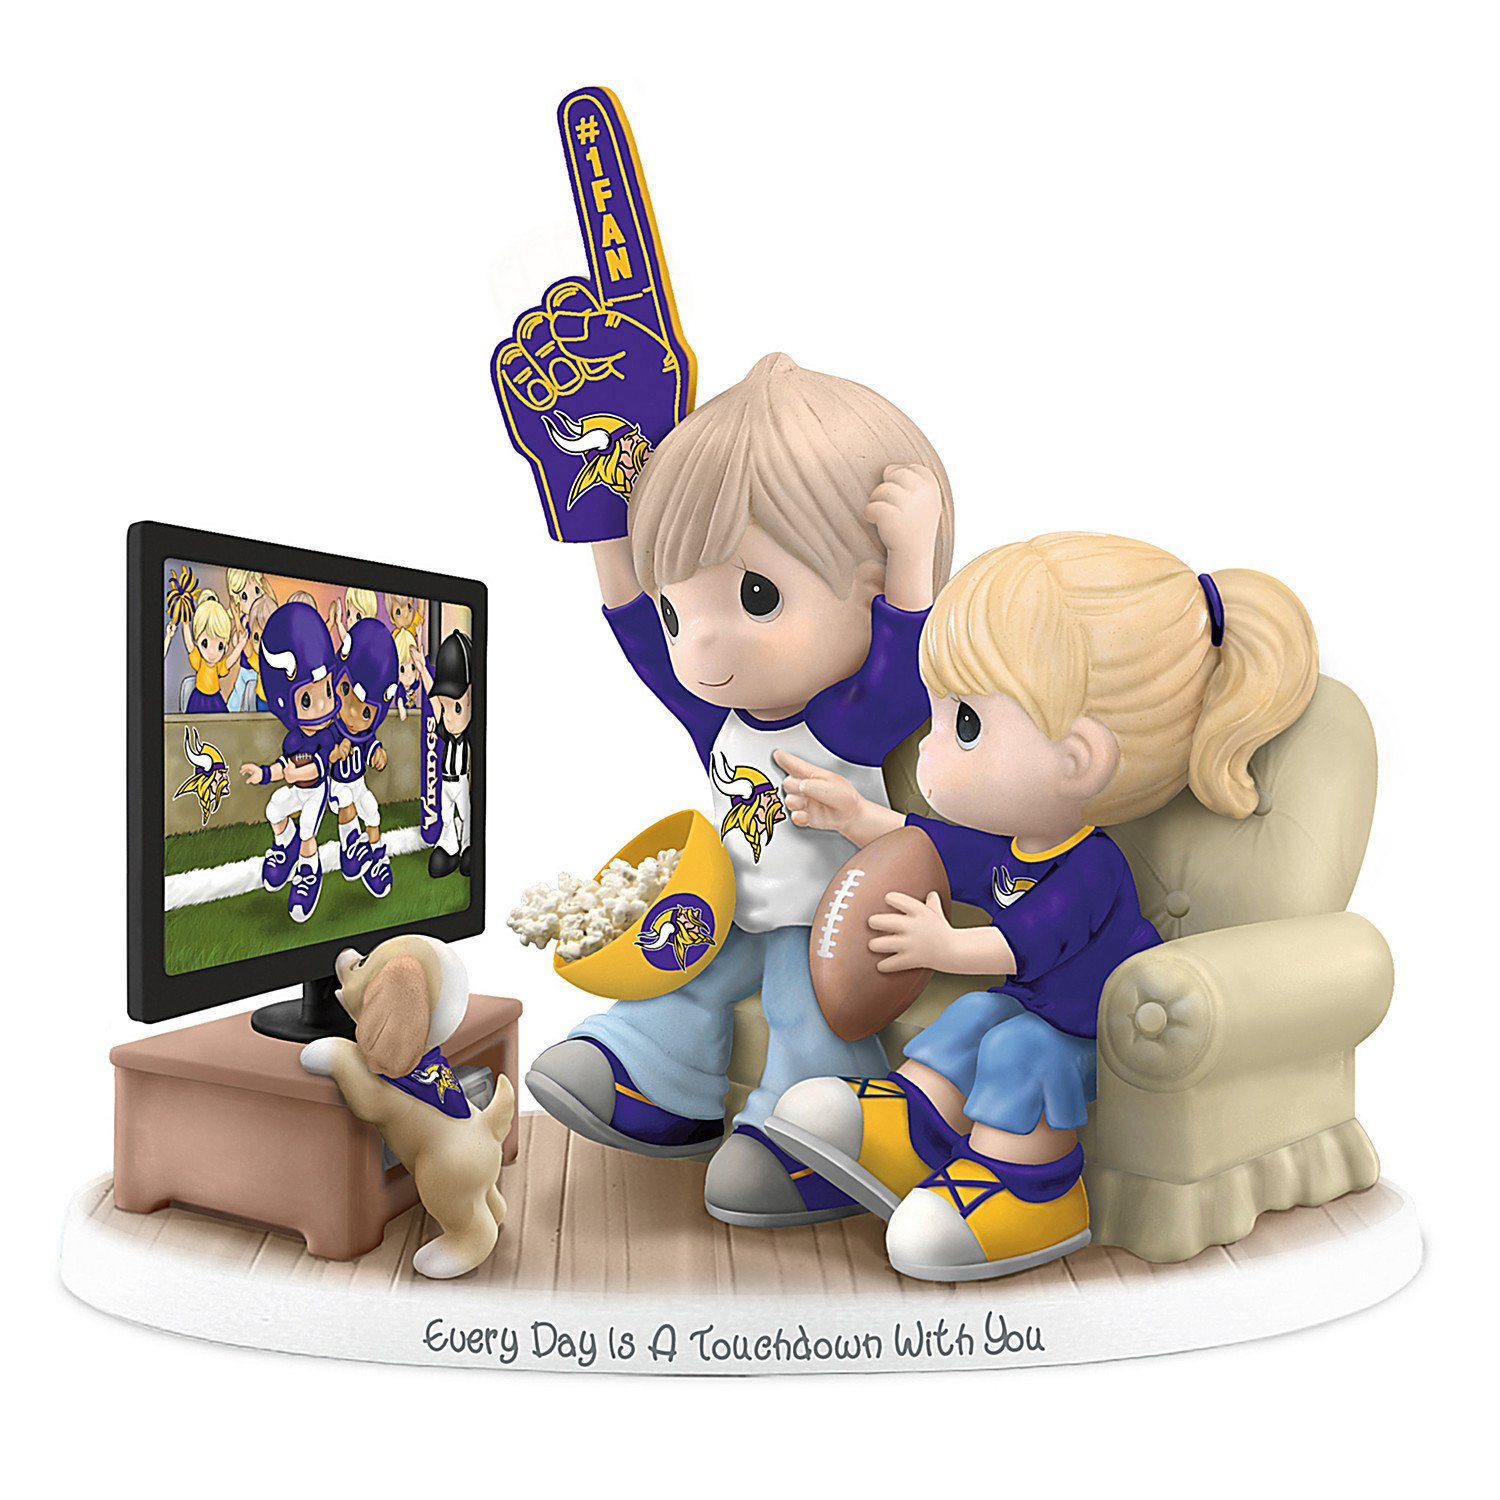 Figurine: Precious Moments Every Day Is A Touchdown With You Vikings Figurine by The Hamilton Collection